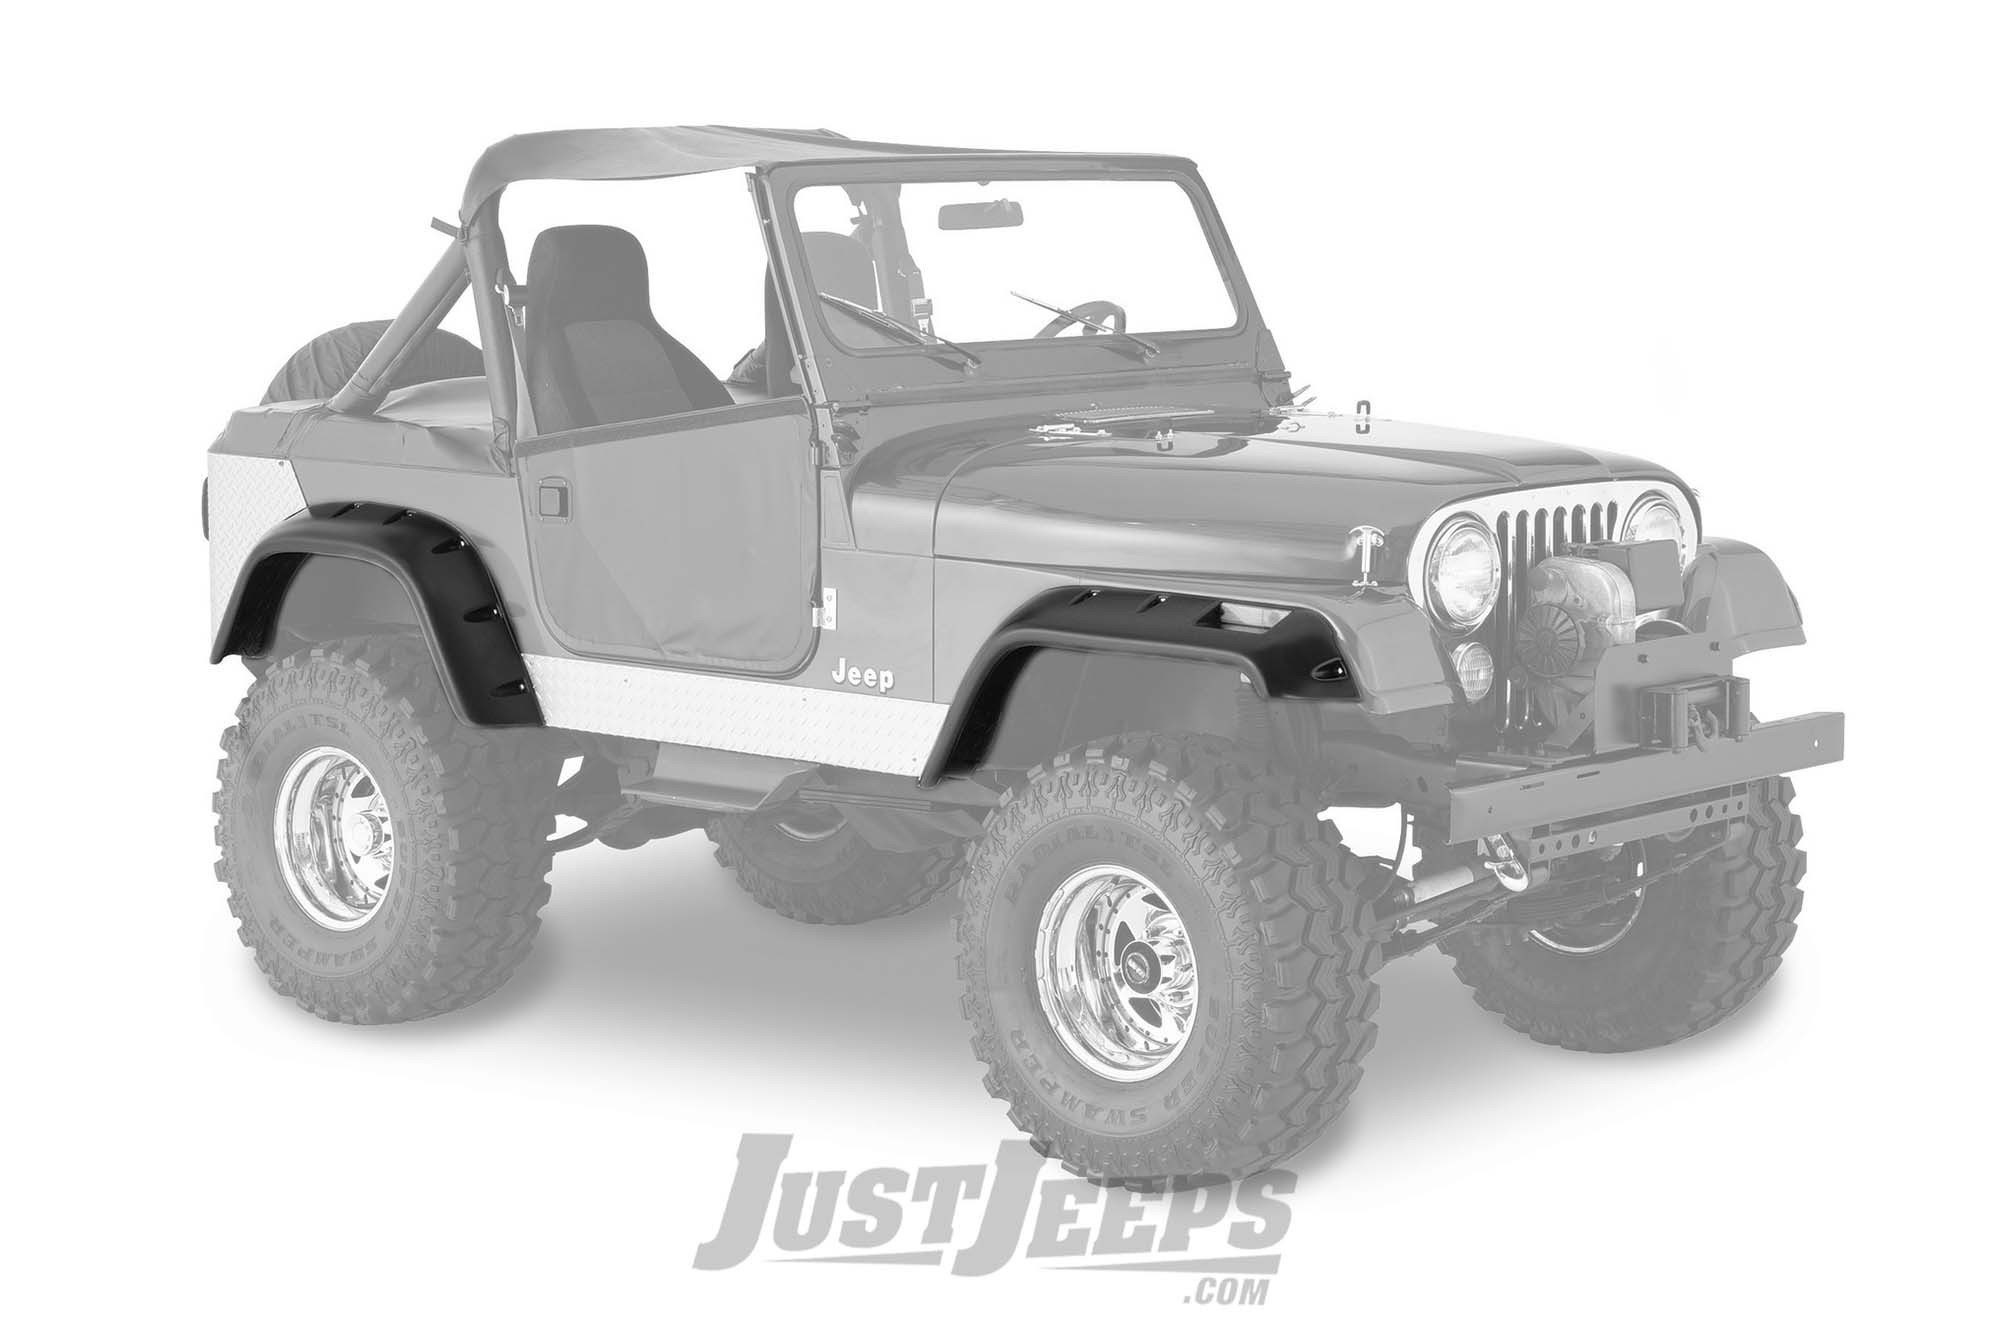 hight resolution of just jeeps bushwacker 6 cut out style fender flares for 1976 86 jeep cj5 cj7 models fenders fender flares shop by part jeep parts store in